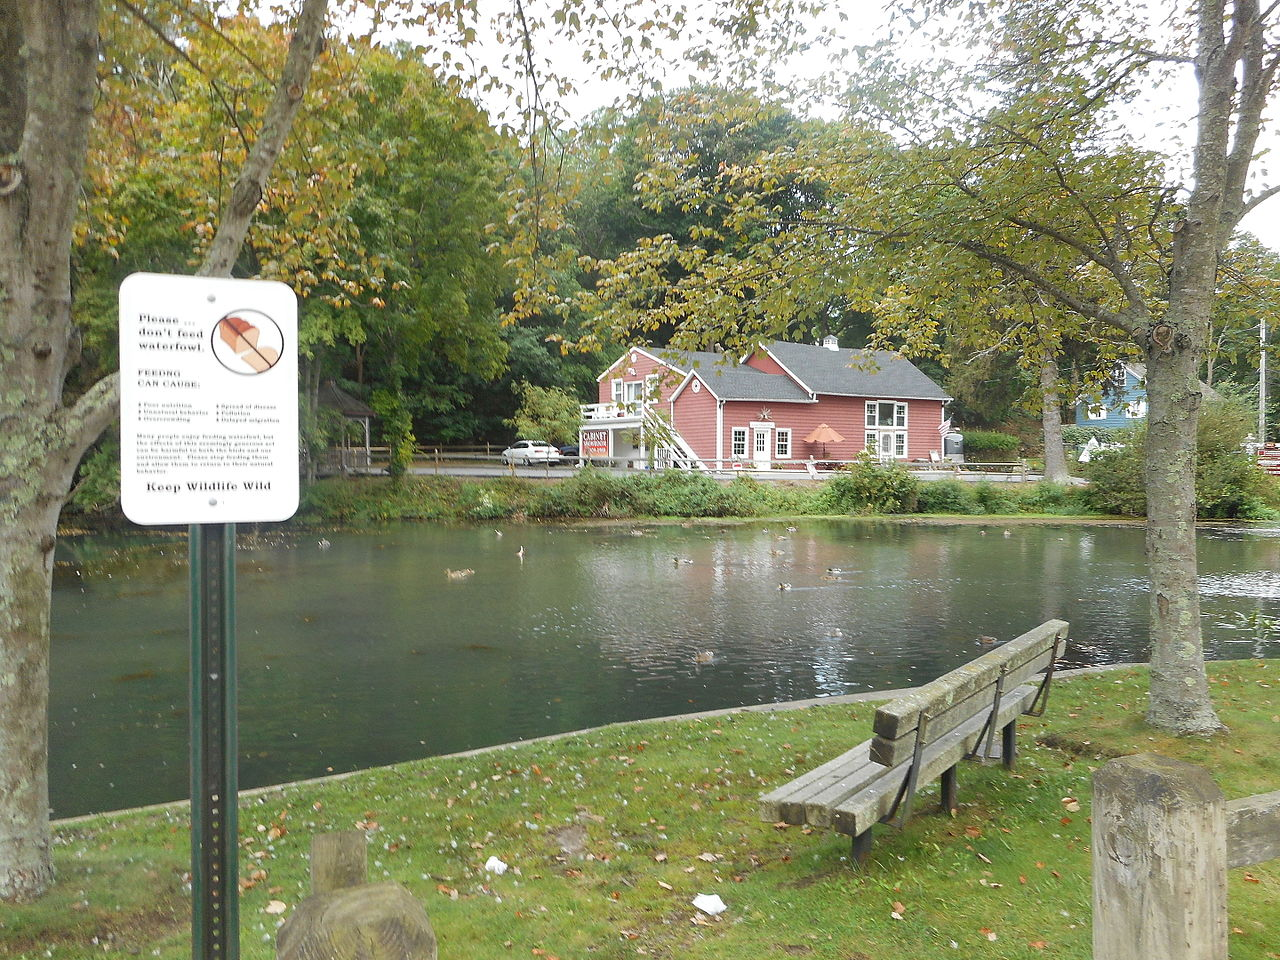 wading river dating See the 7 most recommended doctors in wading river, ny honest opinions shared by friends and neighbors want to find out who they refer.